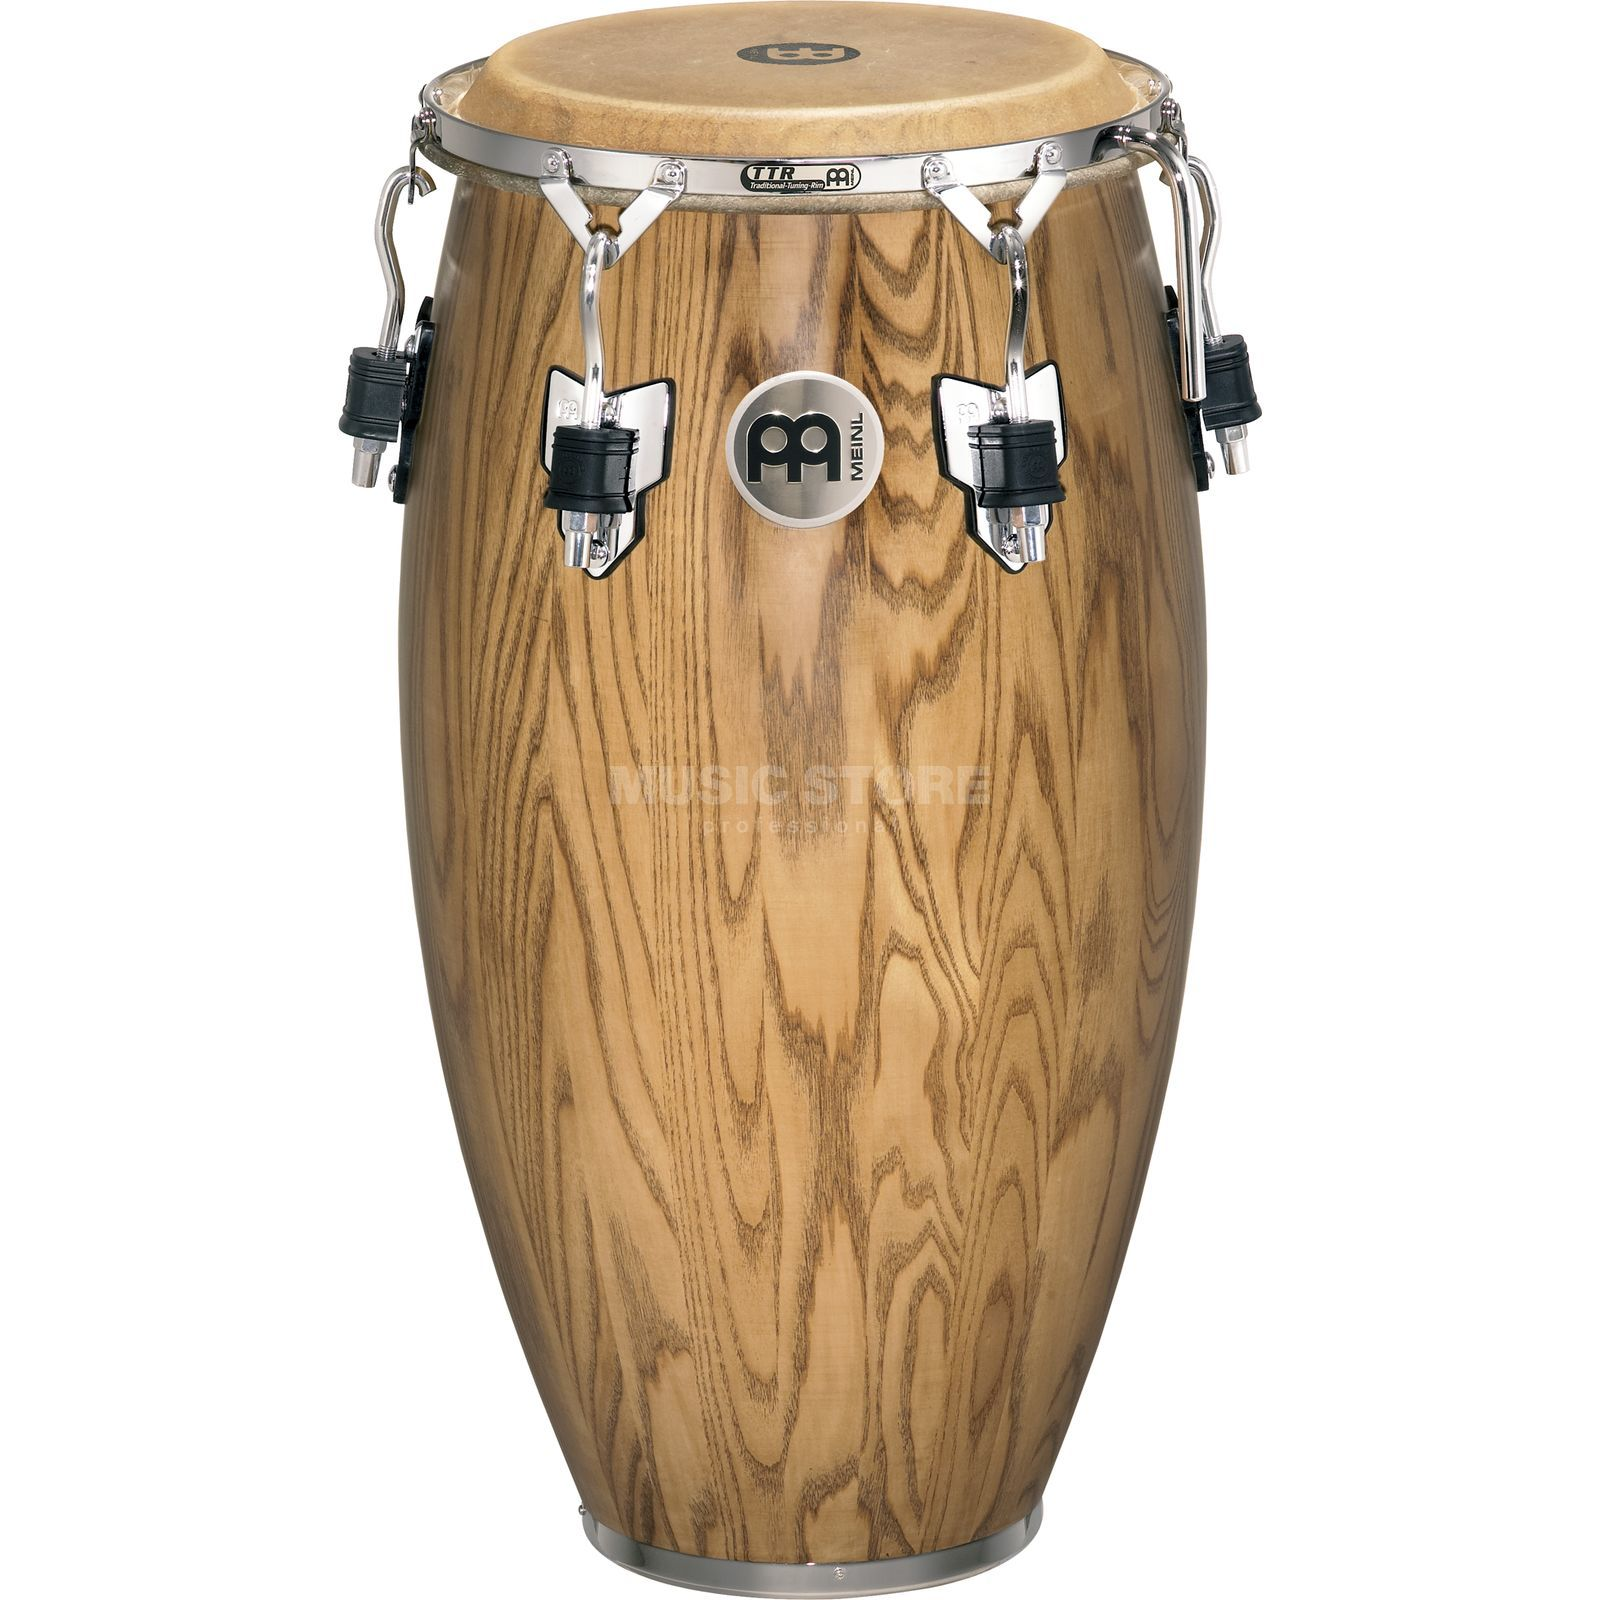 "Meinl Woodcraft Conga WC1134ZFA-M, 11 3/4"", Zebra Finished Ash Product Image"